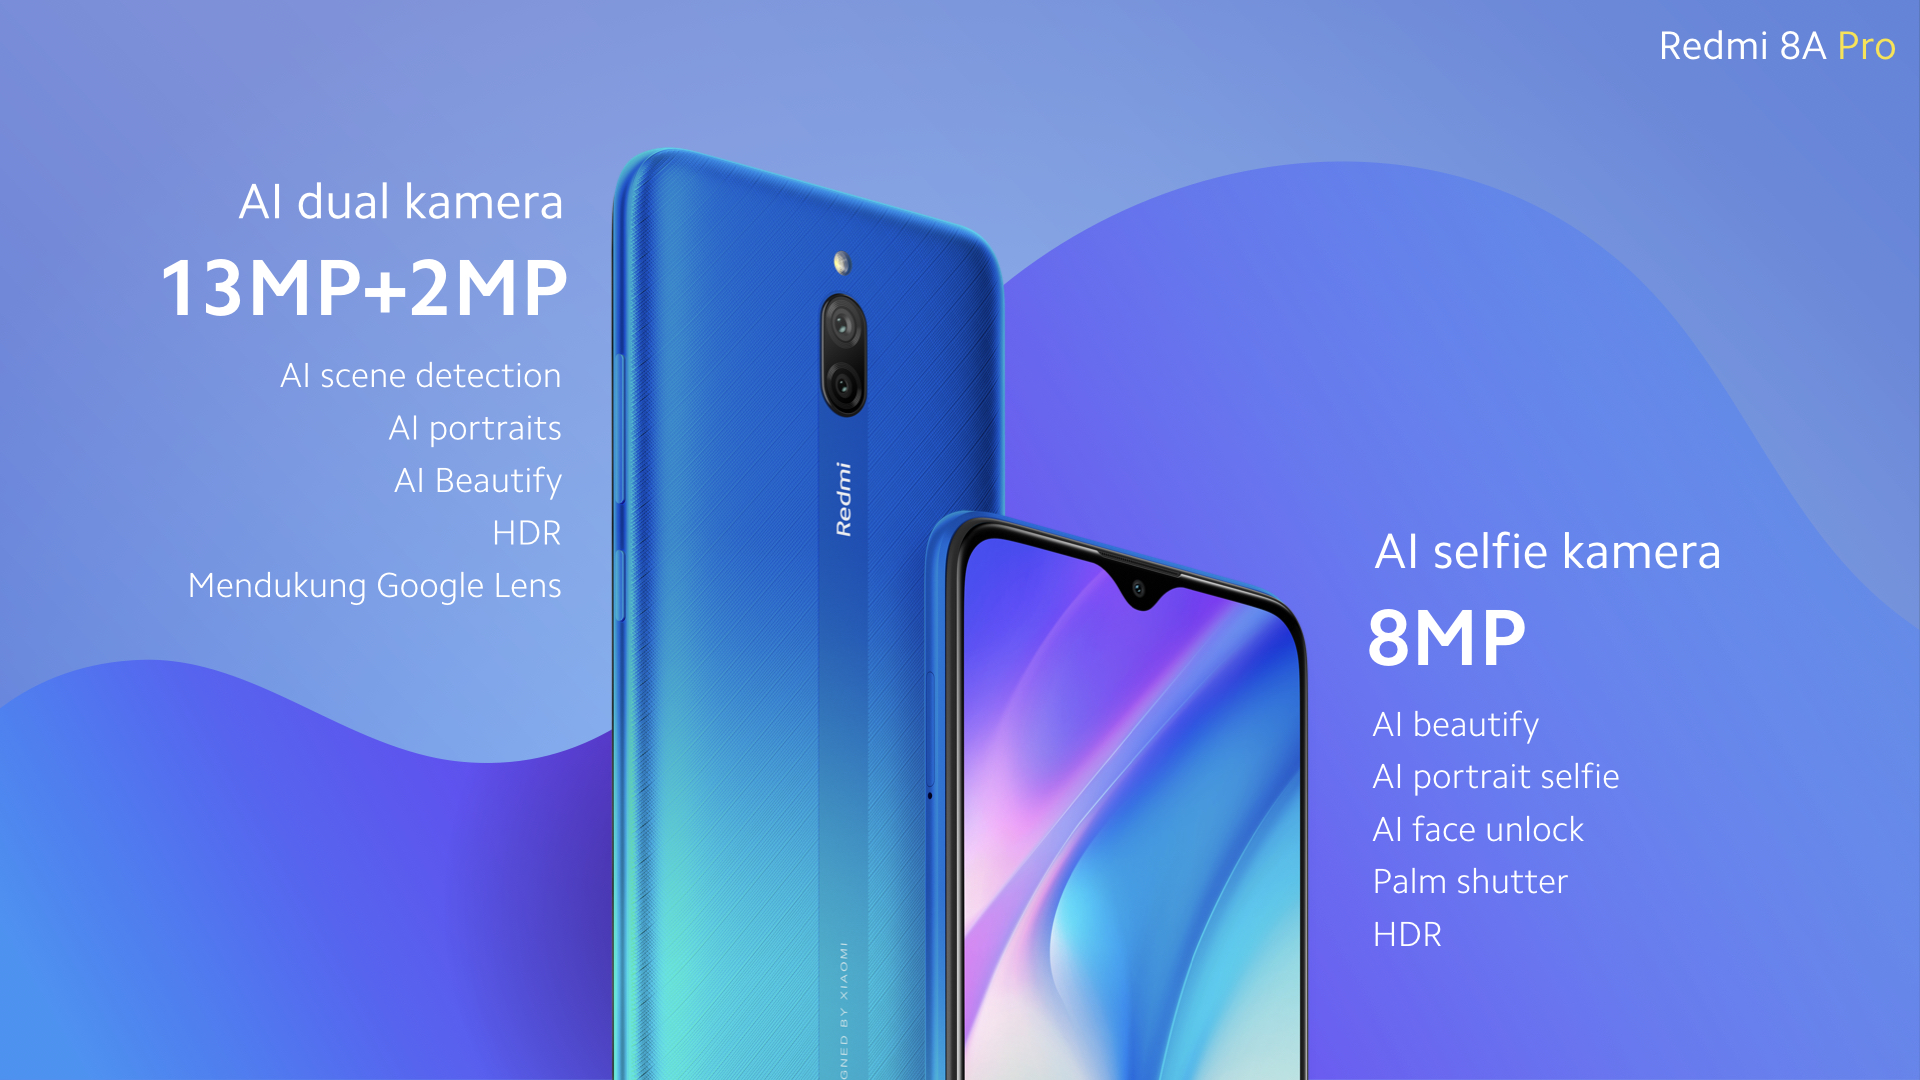 New Redmi 8A Pro: a renowned Redmi 8A Dual that probably won't leave Indonesia